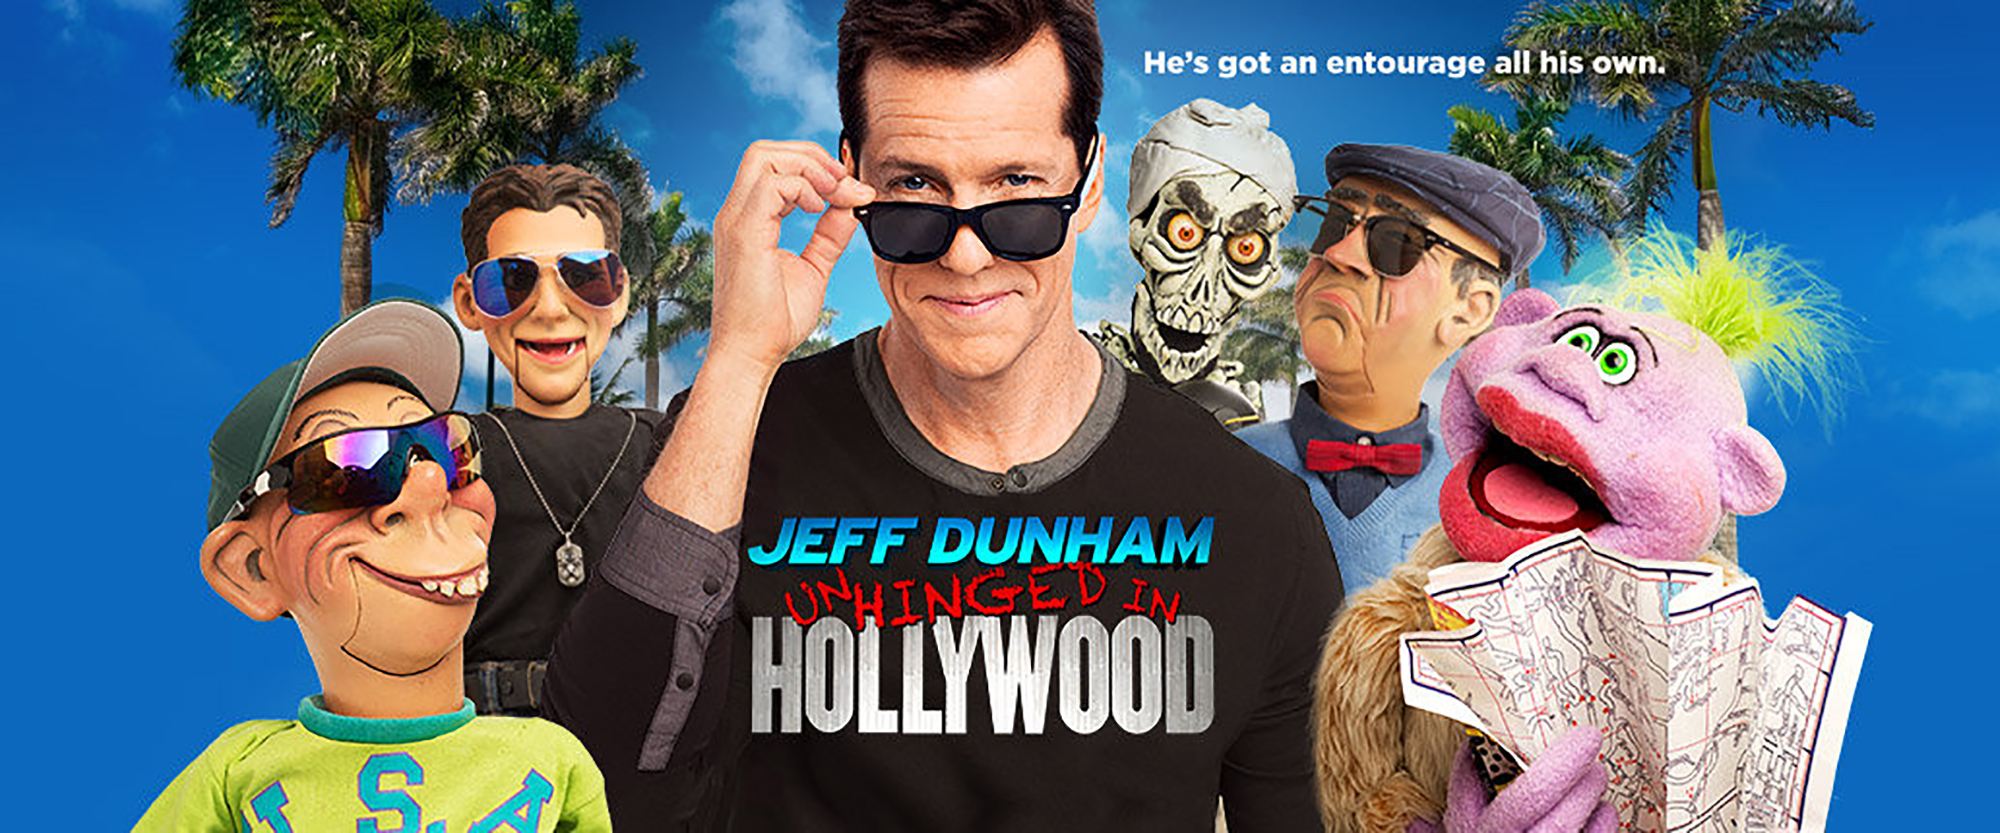 DunhamHollywood_2000